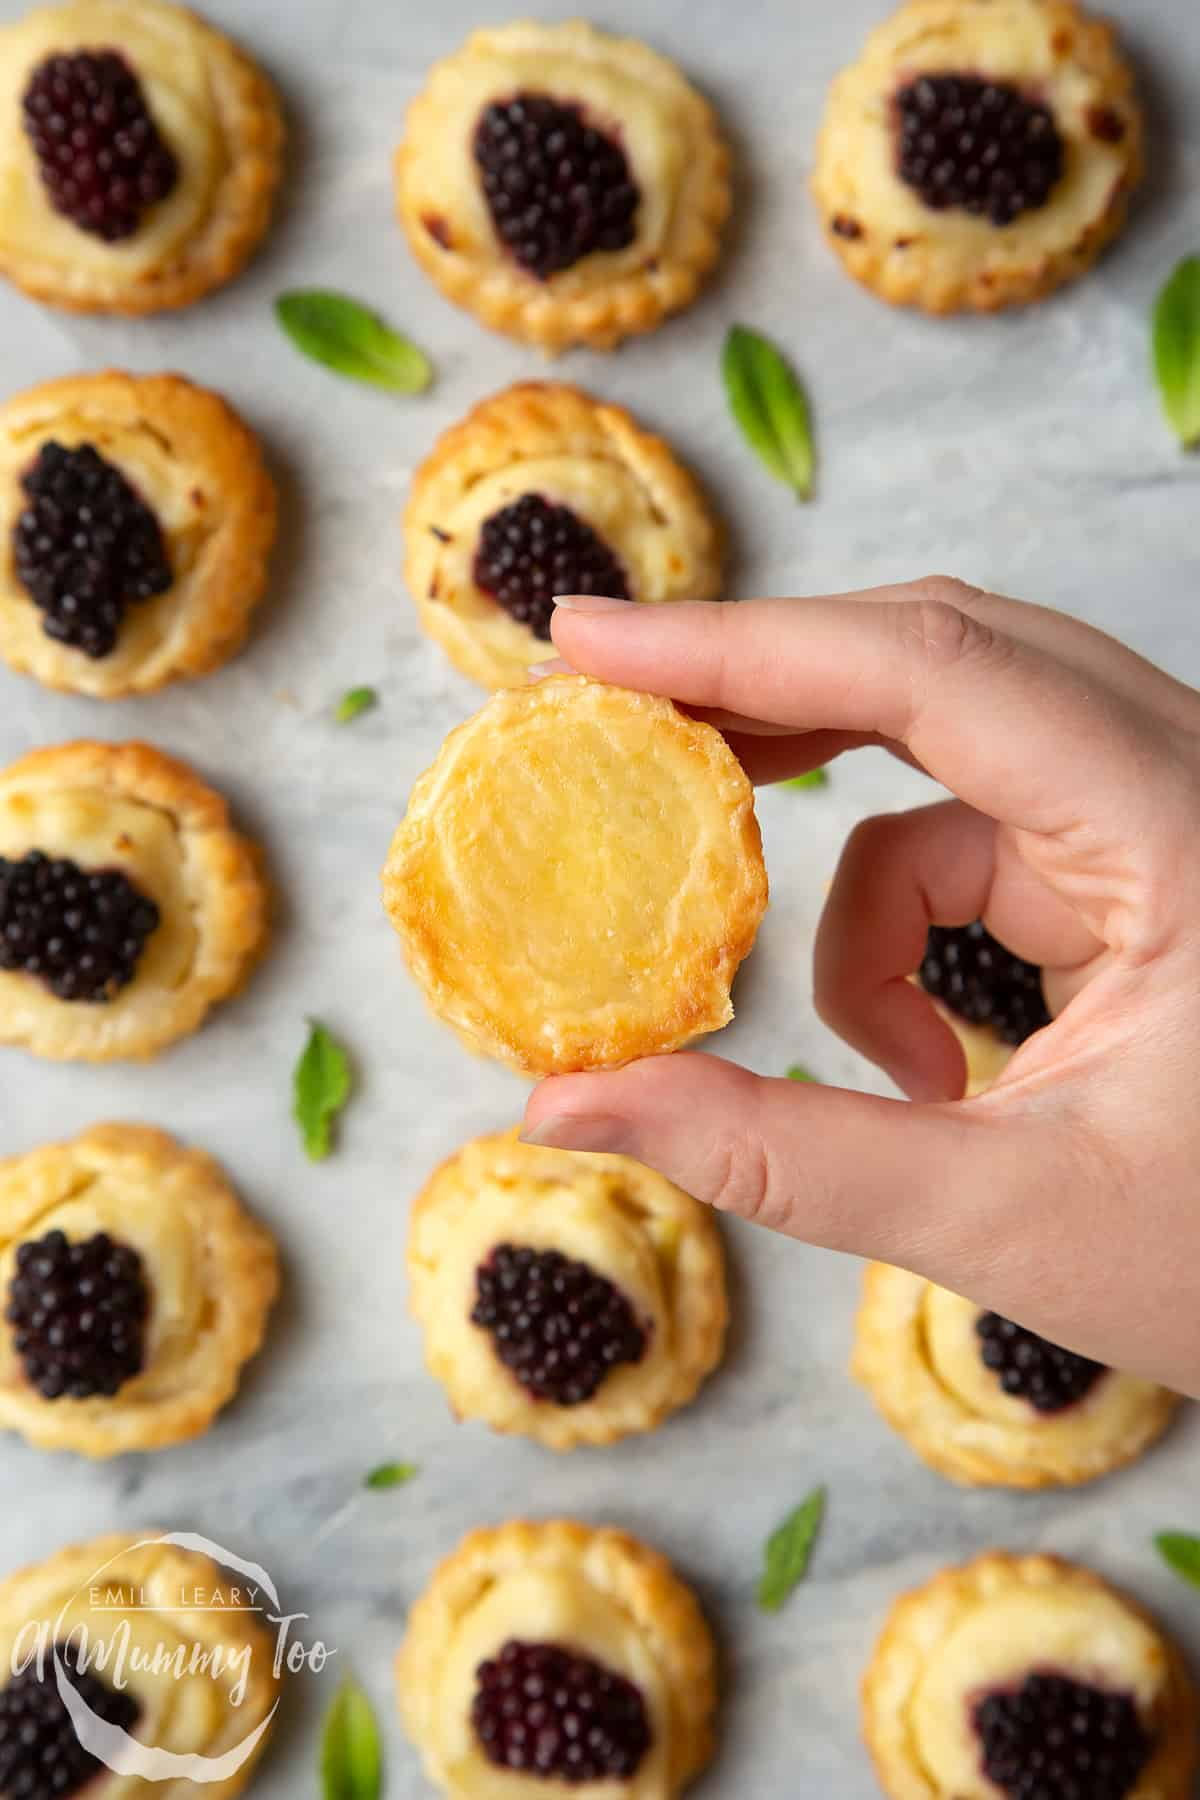 A hand holding a blackberry tartlet, showing the golden underside. More blackberry tartlets comprised of a small puff pastry disc topped with sliced apple, pastry cream and a blackberry sit on the marble board with tiny mint leaves scattered around them.